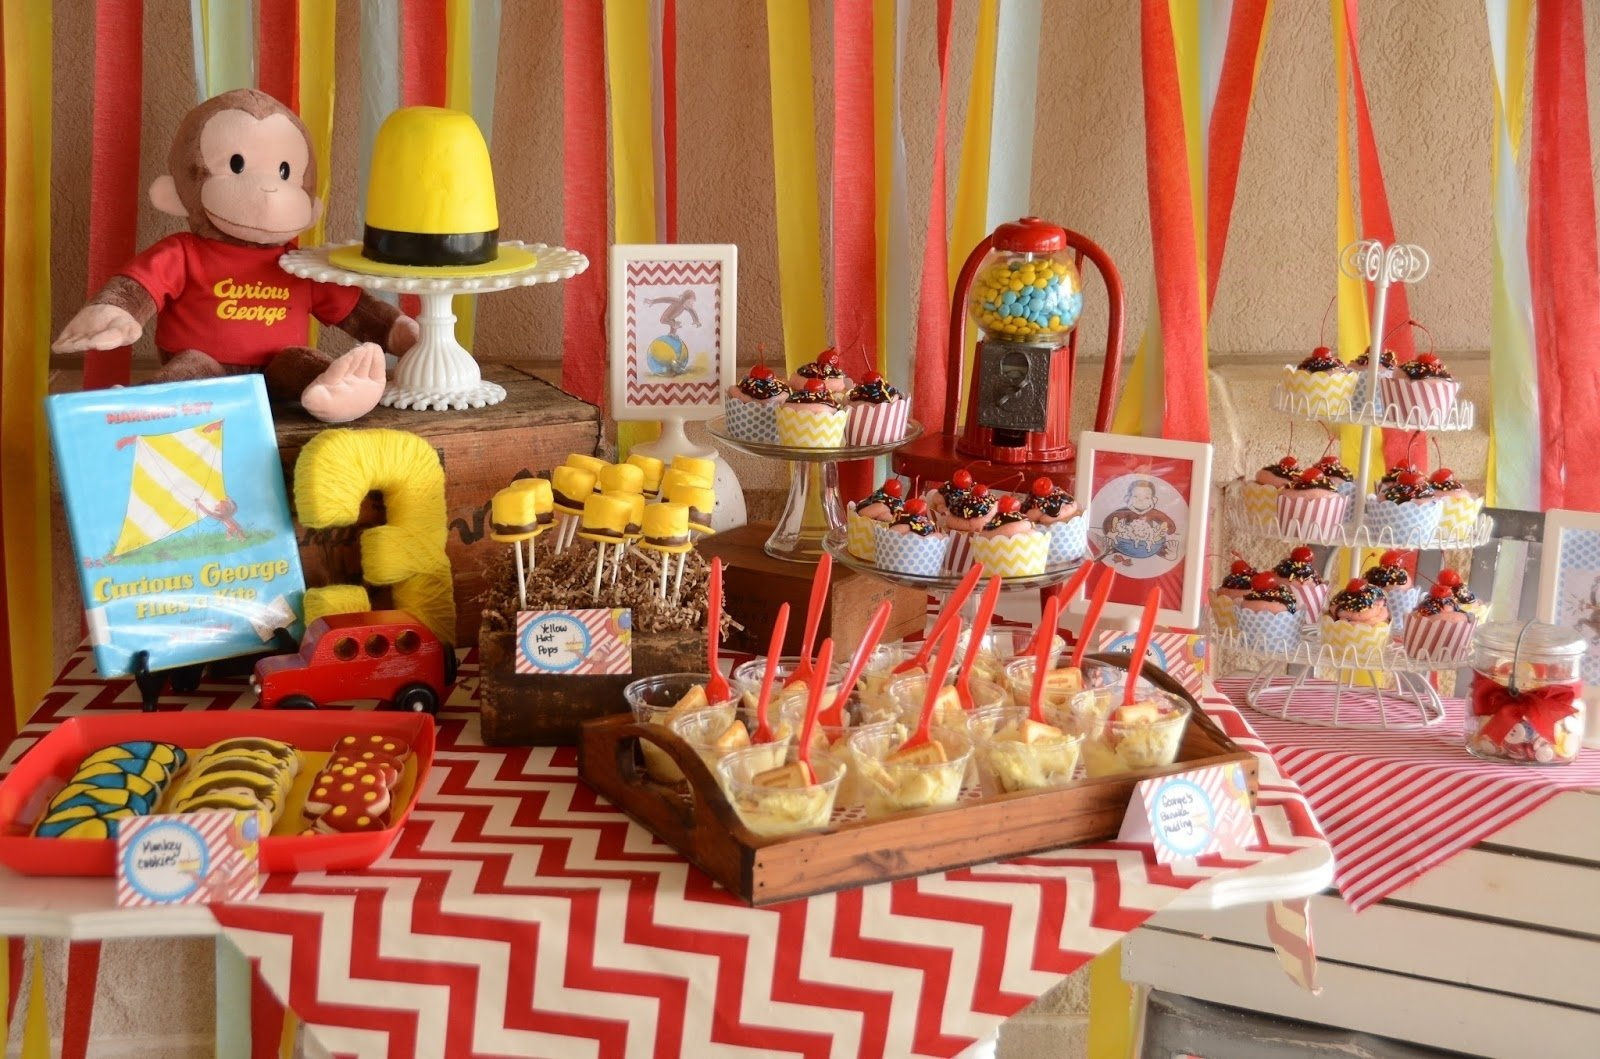 10 Fashionable Curious George Birthday Party Ideas curious george birthday party ideas for great impression 2020